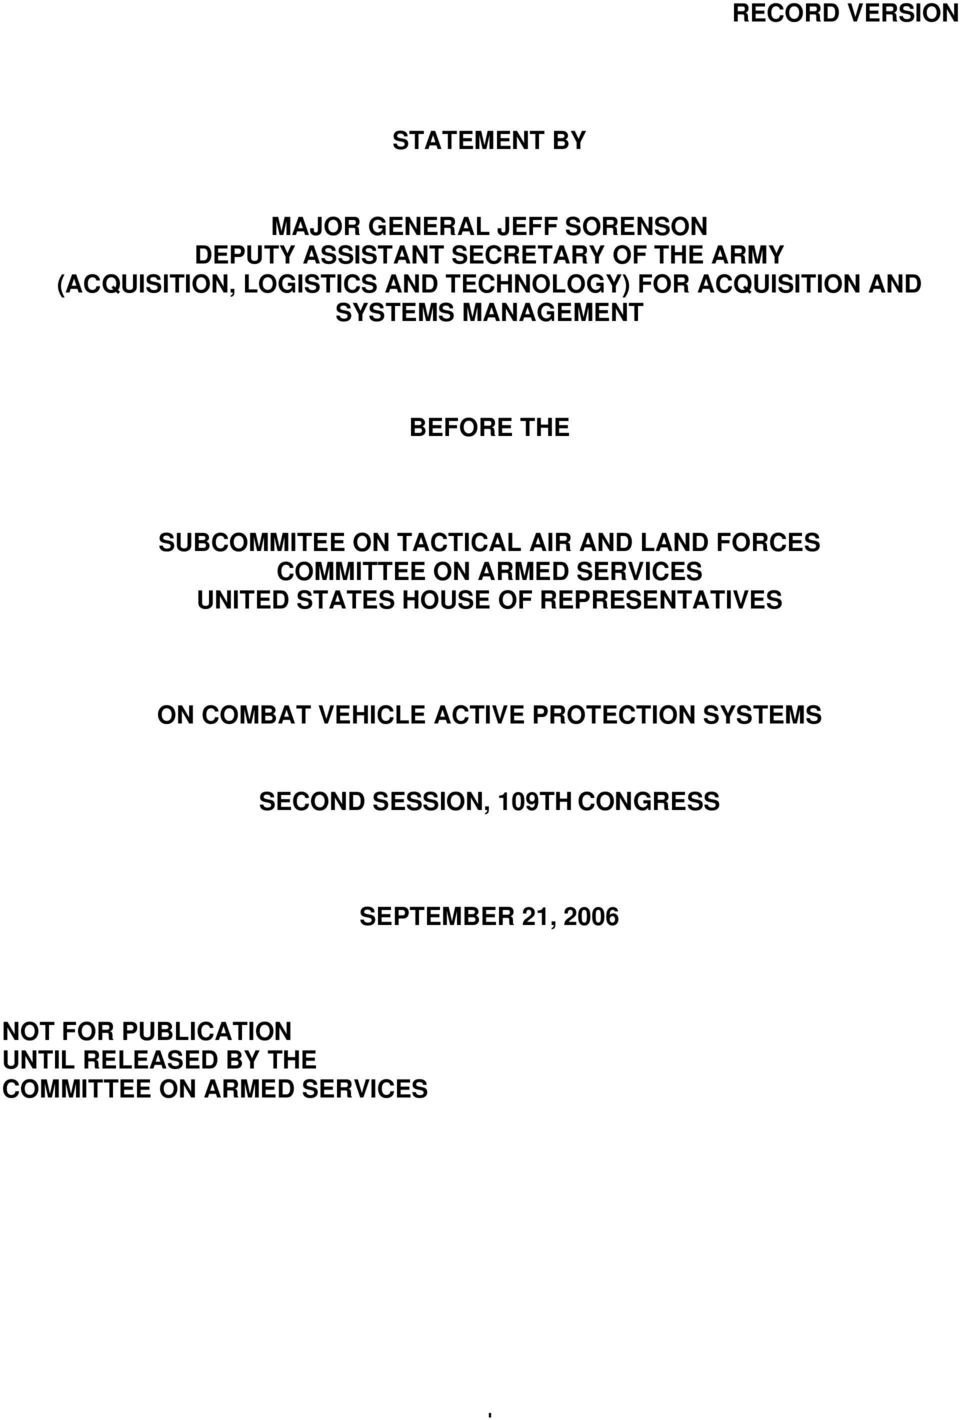 FORCES COMMITTEE ON ARMED SERVICES UNITED STATES HOUSE OF REPRESENTATIVES ON COMBAT VEHICLE ACTIVE PROTECTION